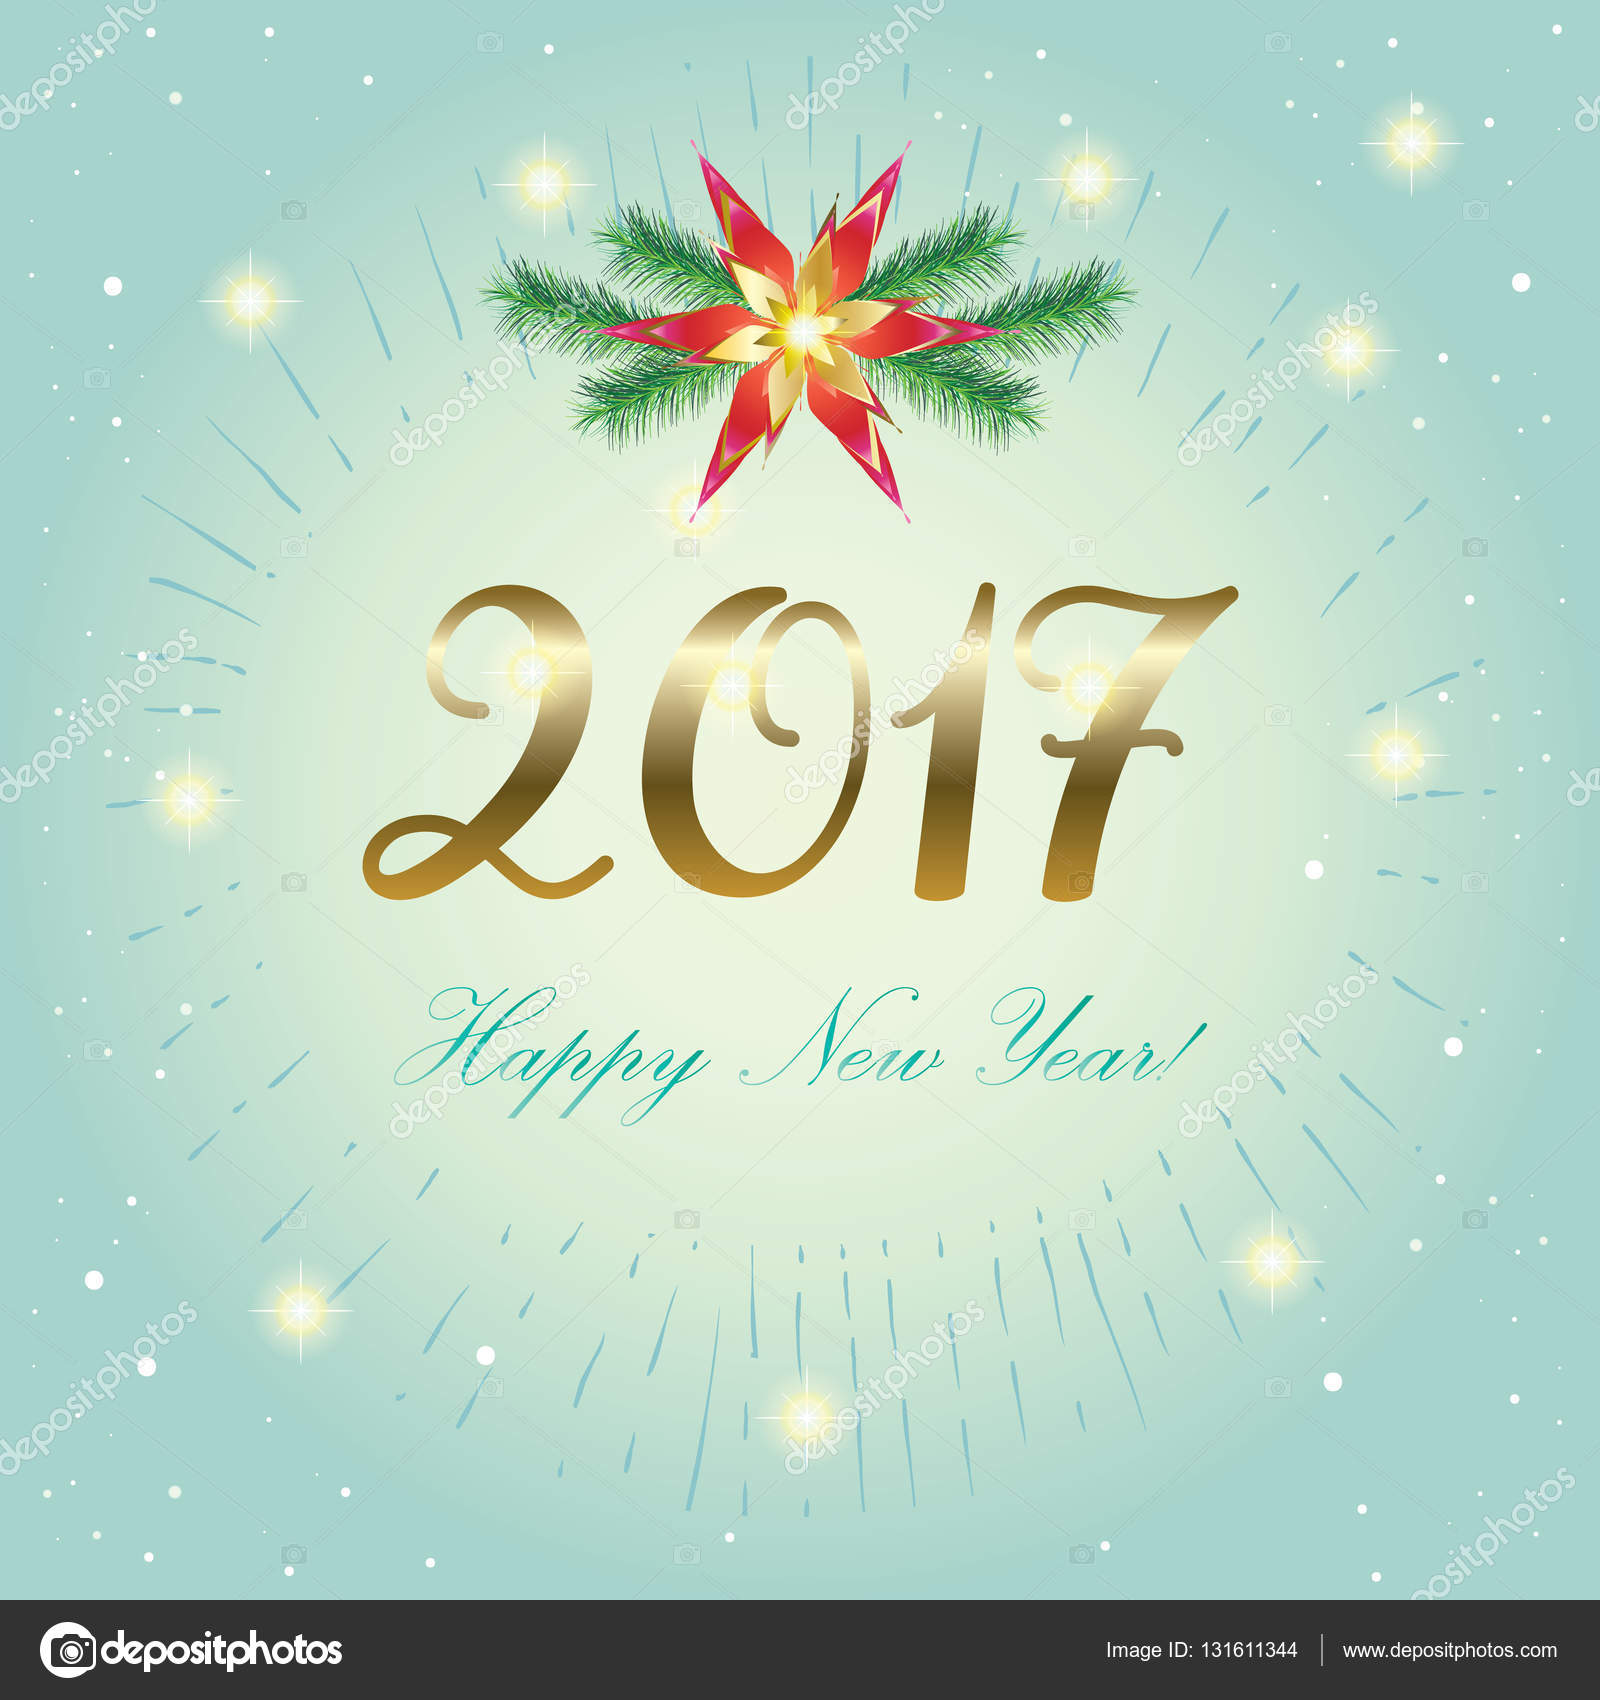 Happy new year 2017 christmas happy new year 2017 christmas depositphotos131611344 stock illustration happy new year 2017 christmasg m4hsunfo